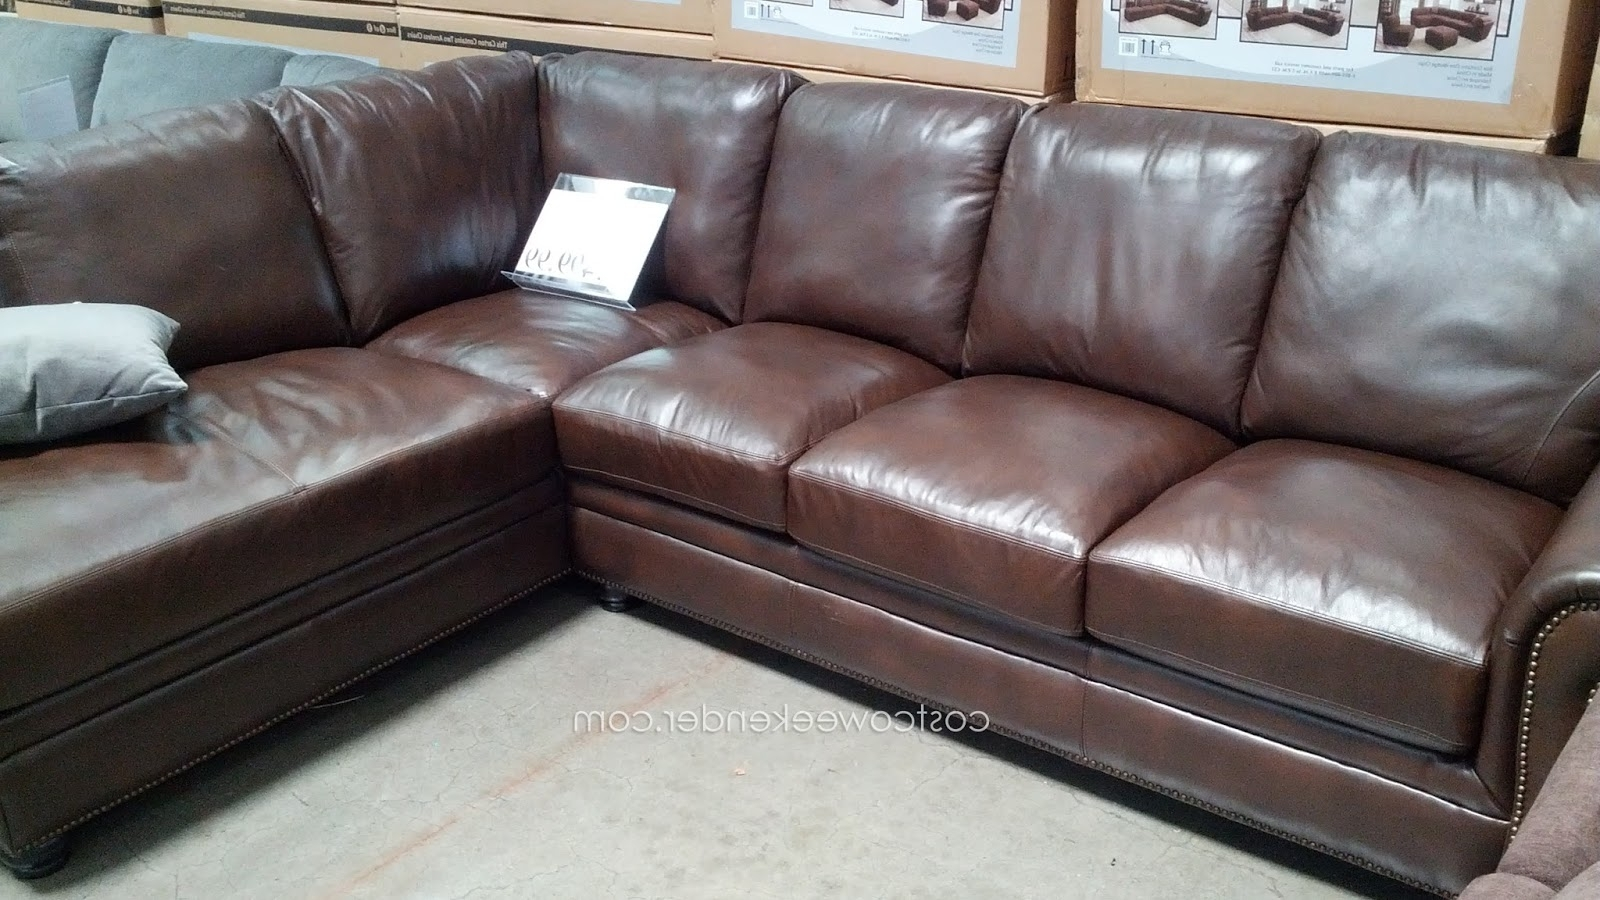 Recent Sectional Sofa Design: Costco Sectional Sofas Best Ever Leather In Sectional Sofas At Costco (View 14 of 20)